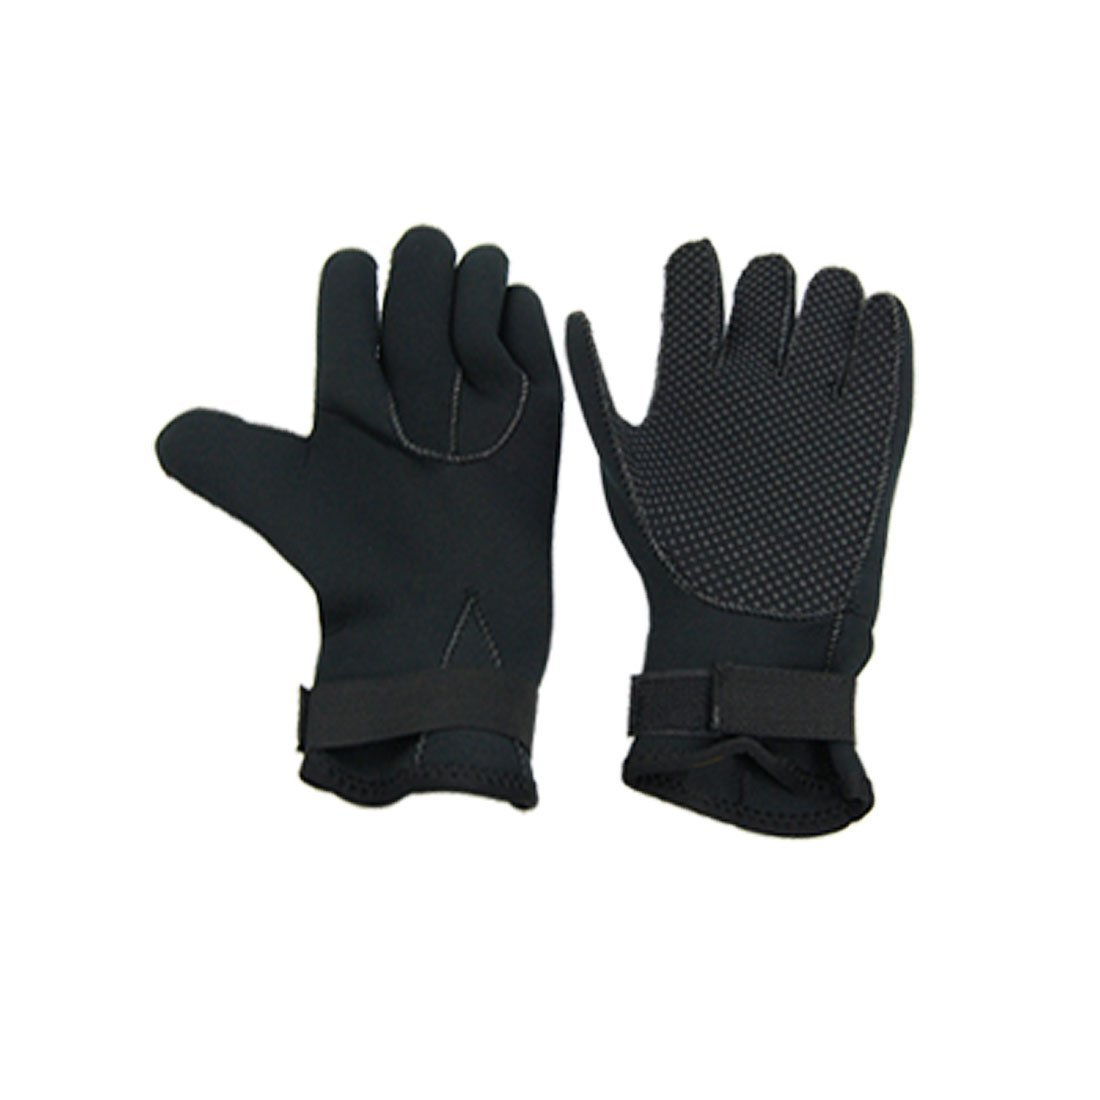 1 Pair Black Nonslip 3mm Neoprene Diving Diver Swimming Gloves Size M